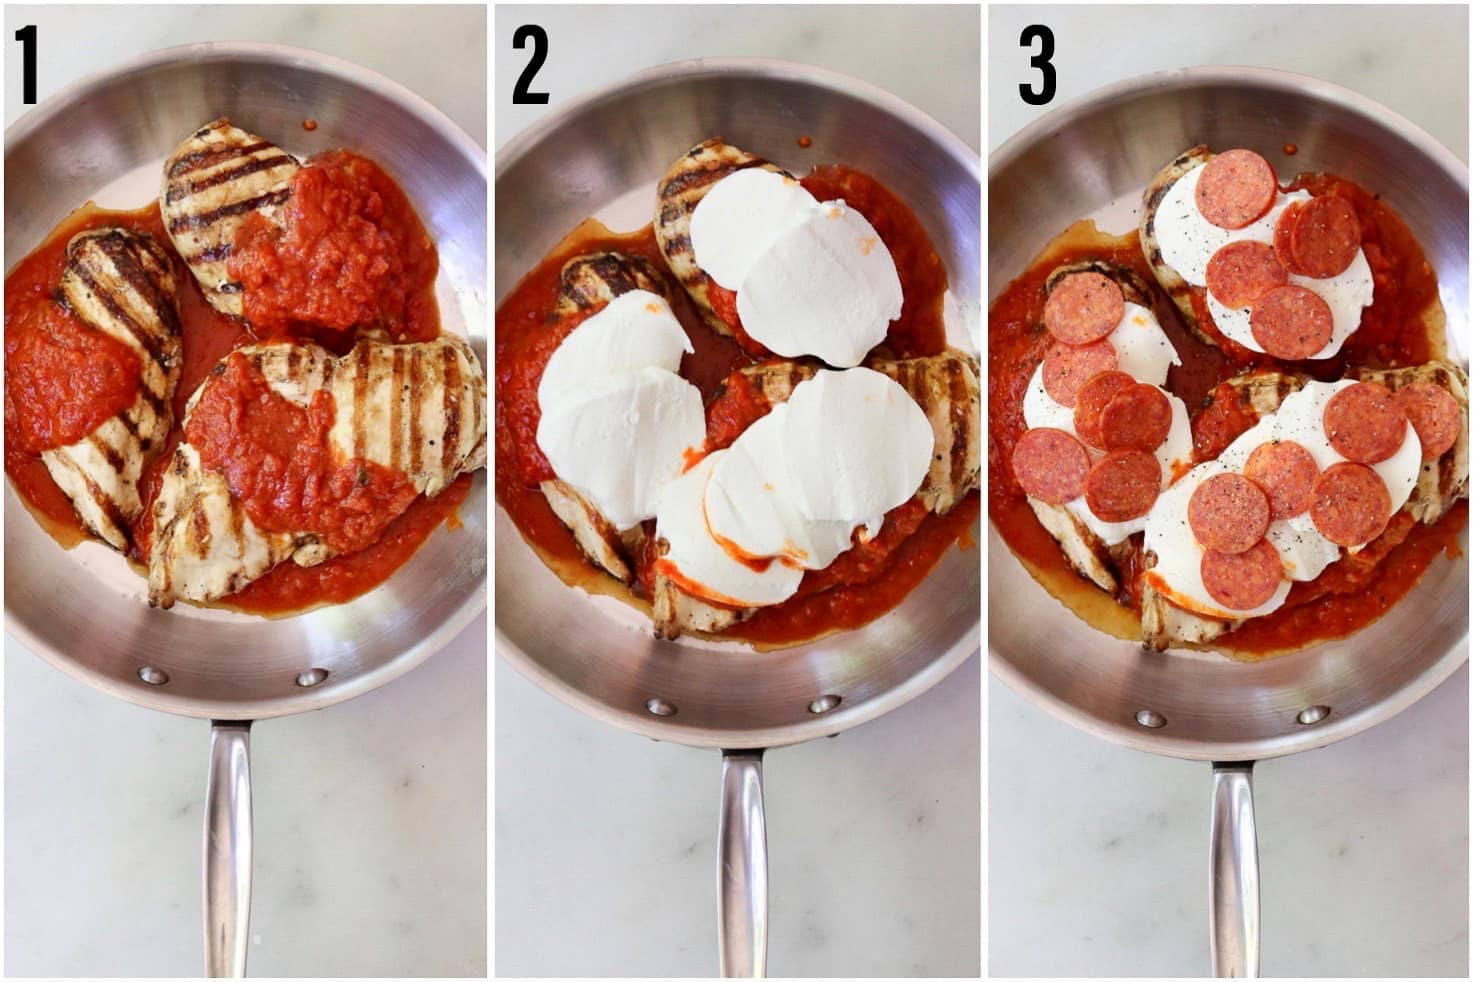 Collage of three photos showing the process to make the recipe: The chicken and sauce in the skillet, then topped with cheese, and finally topped with pepperoni slices.